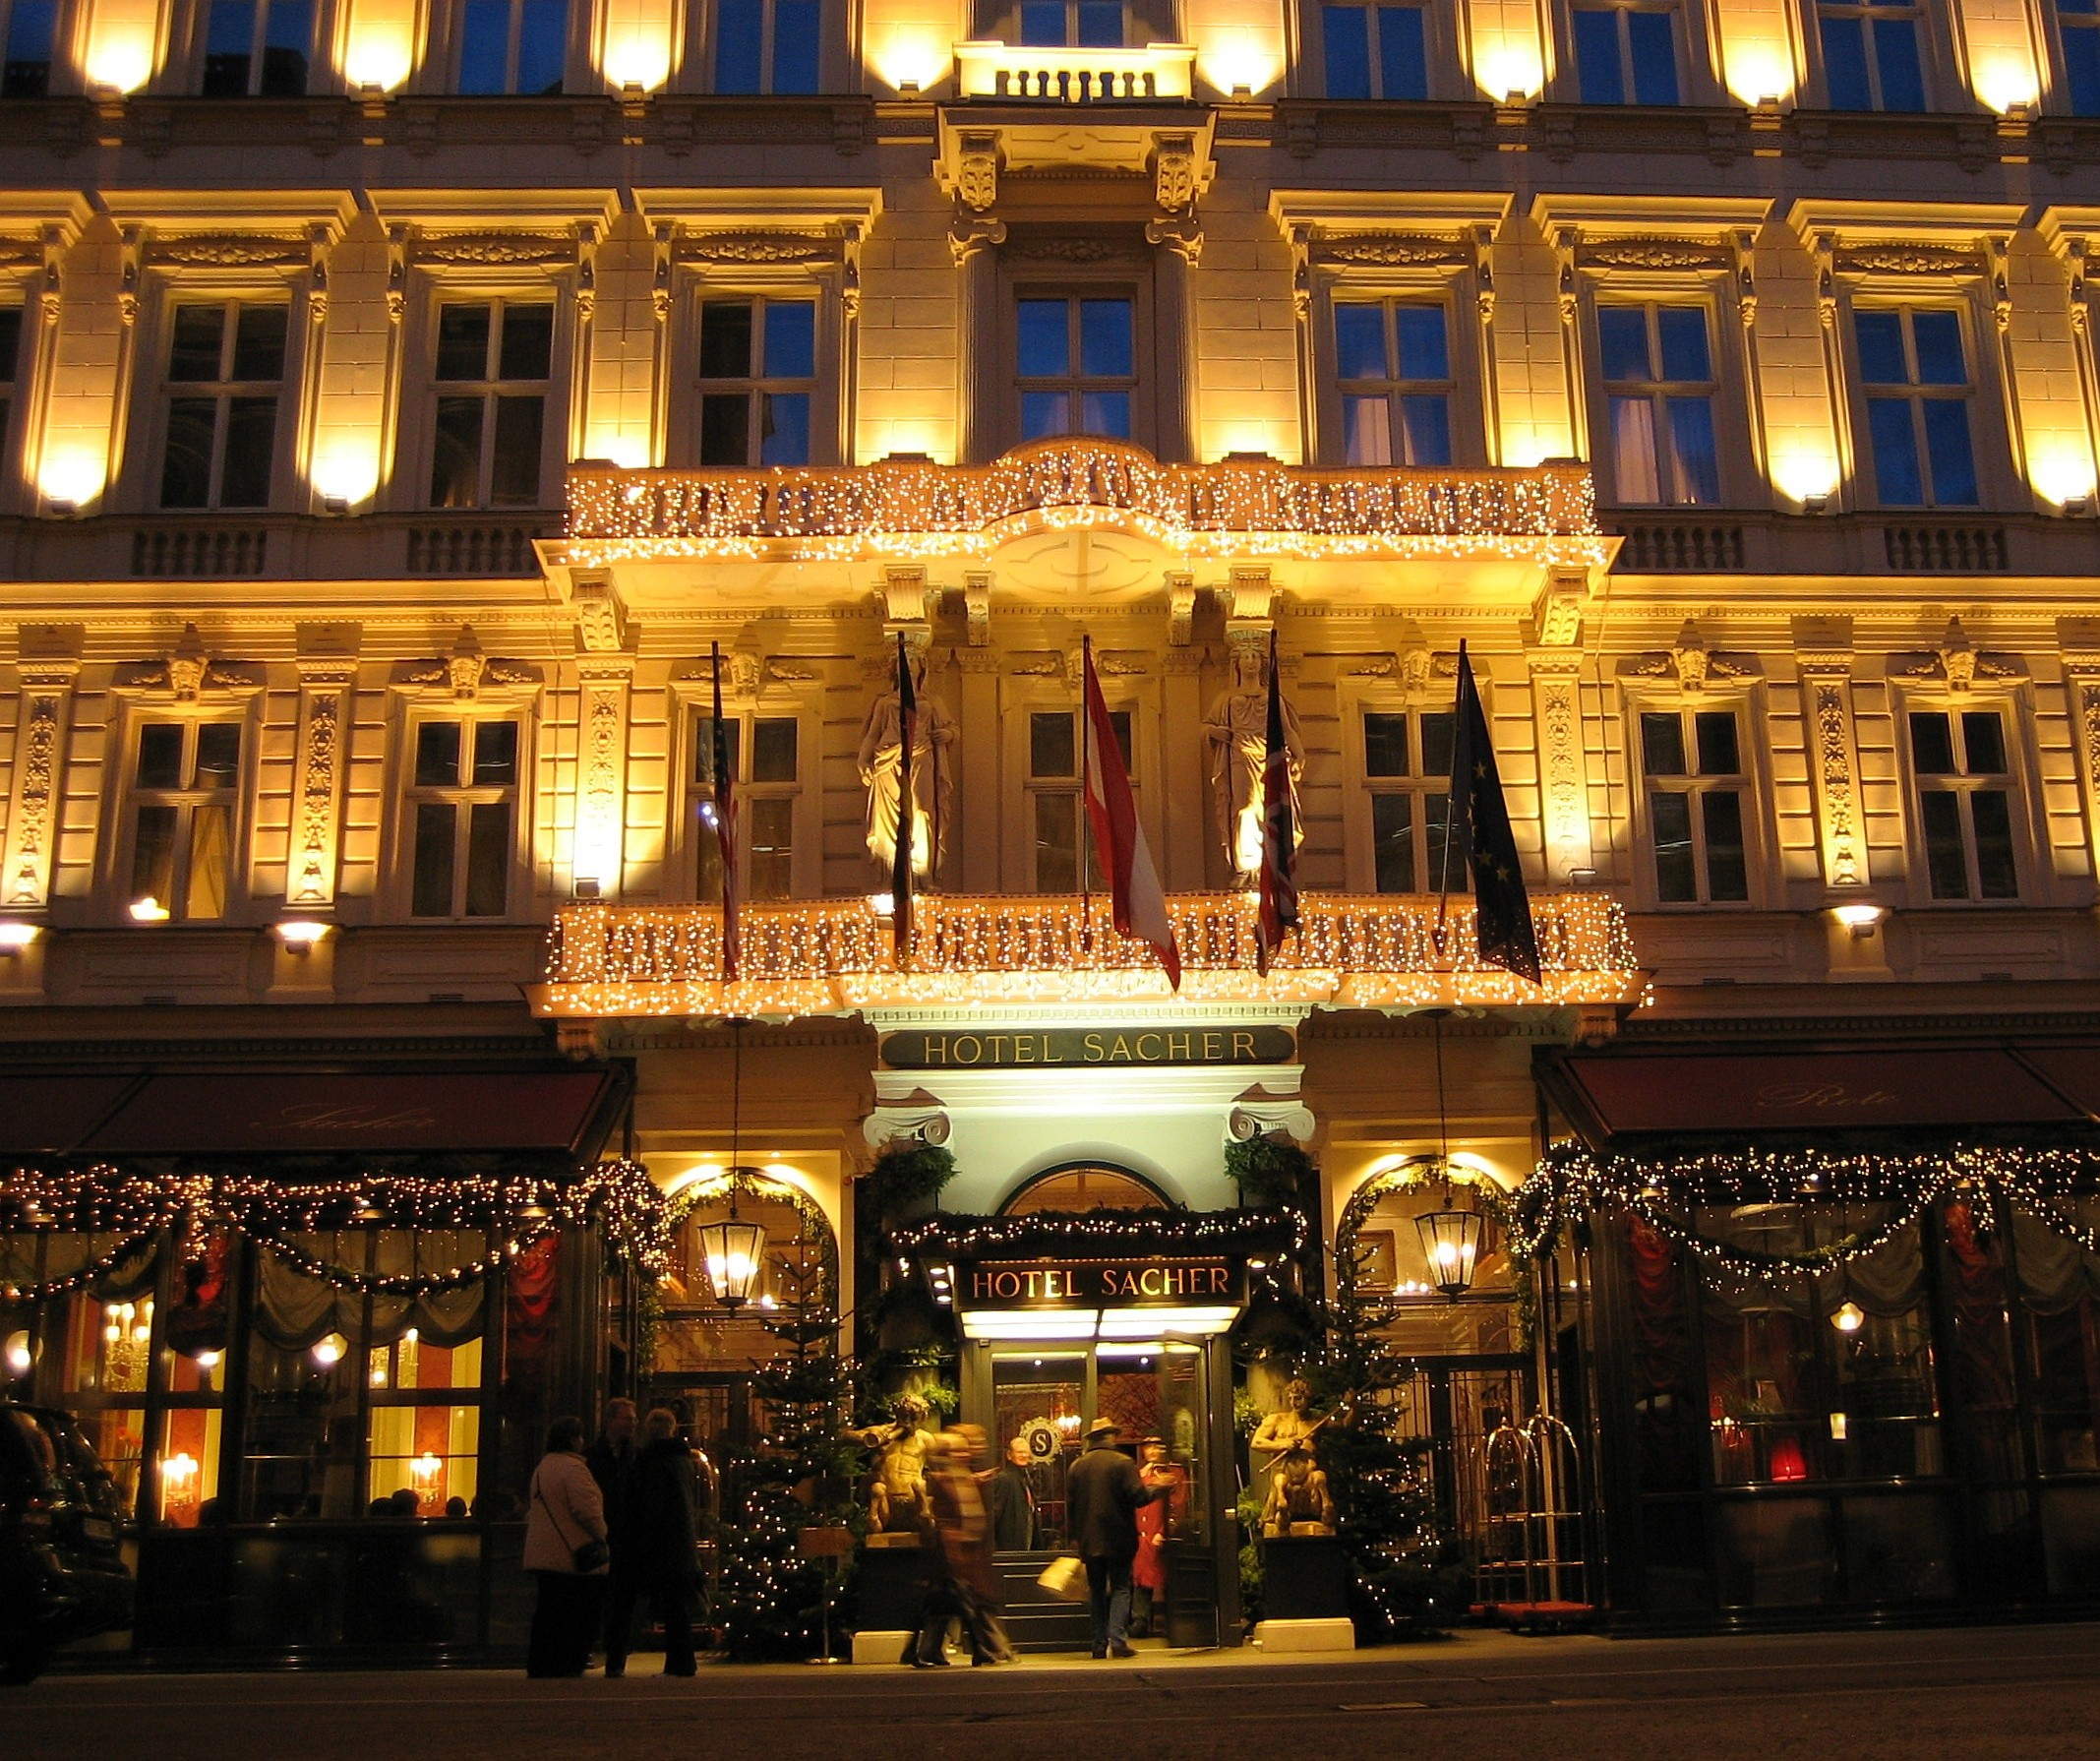 Www Hotel Sacher Wien At